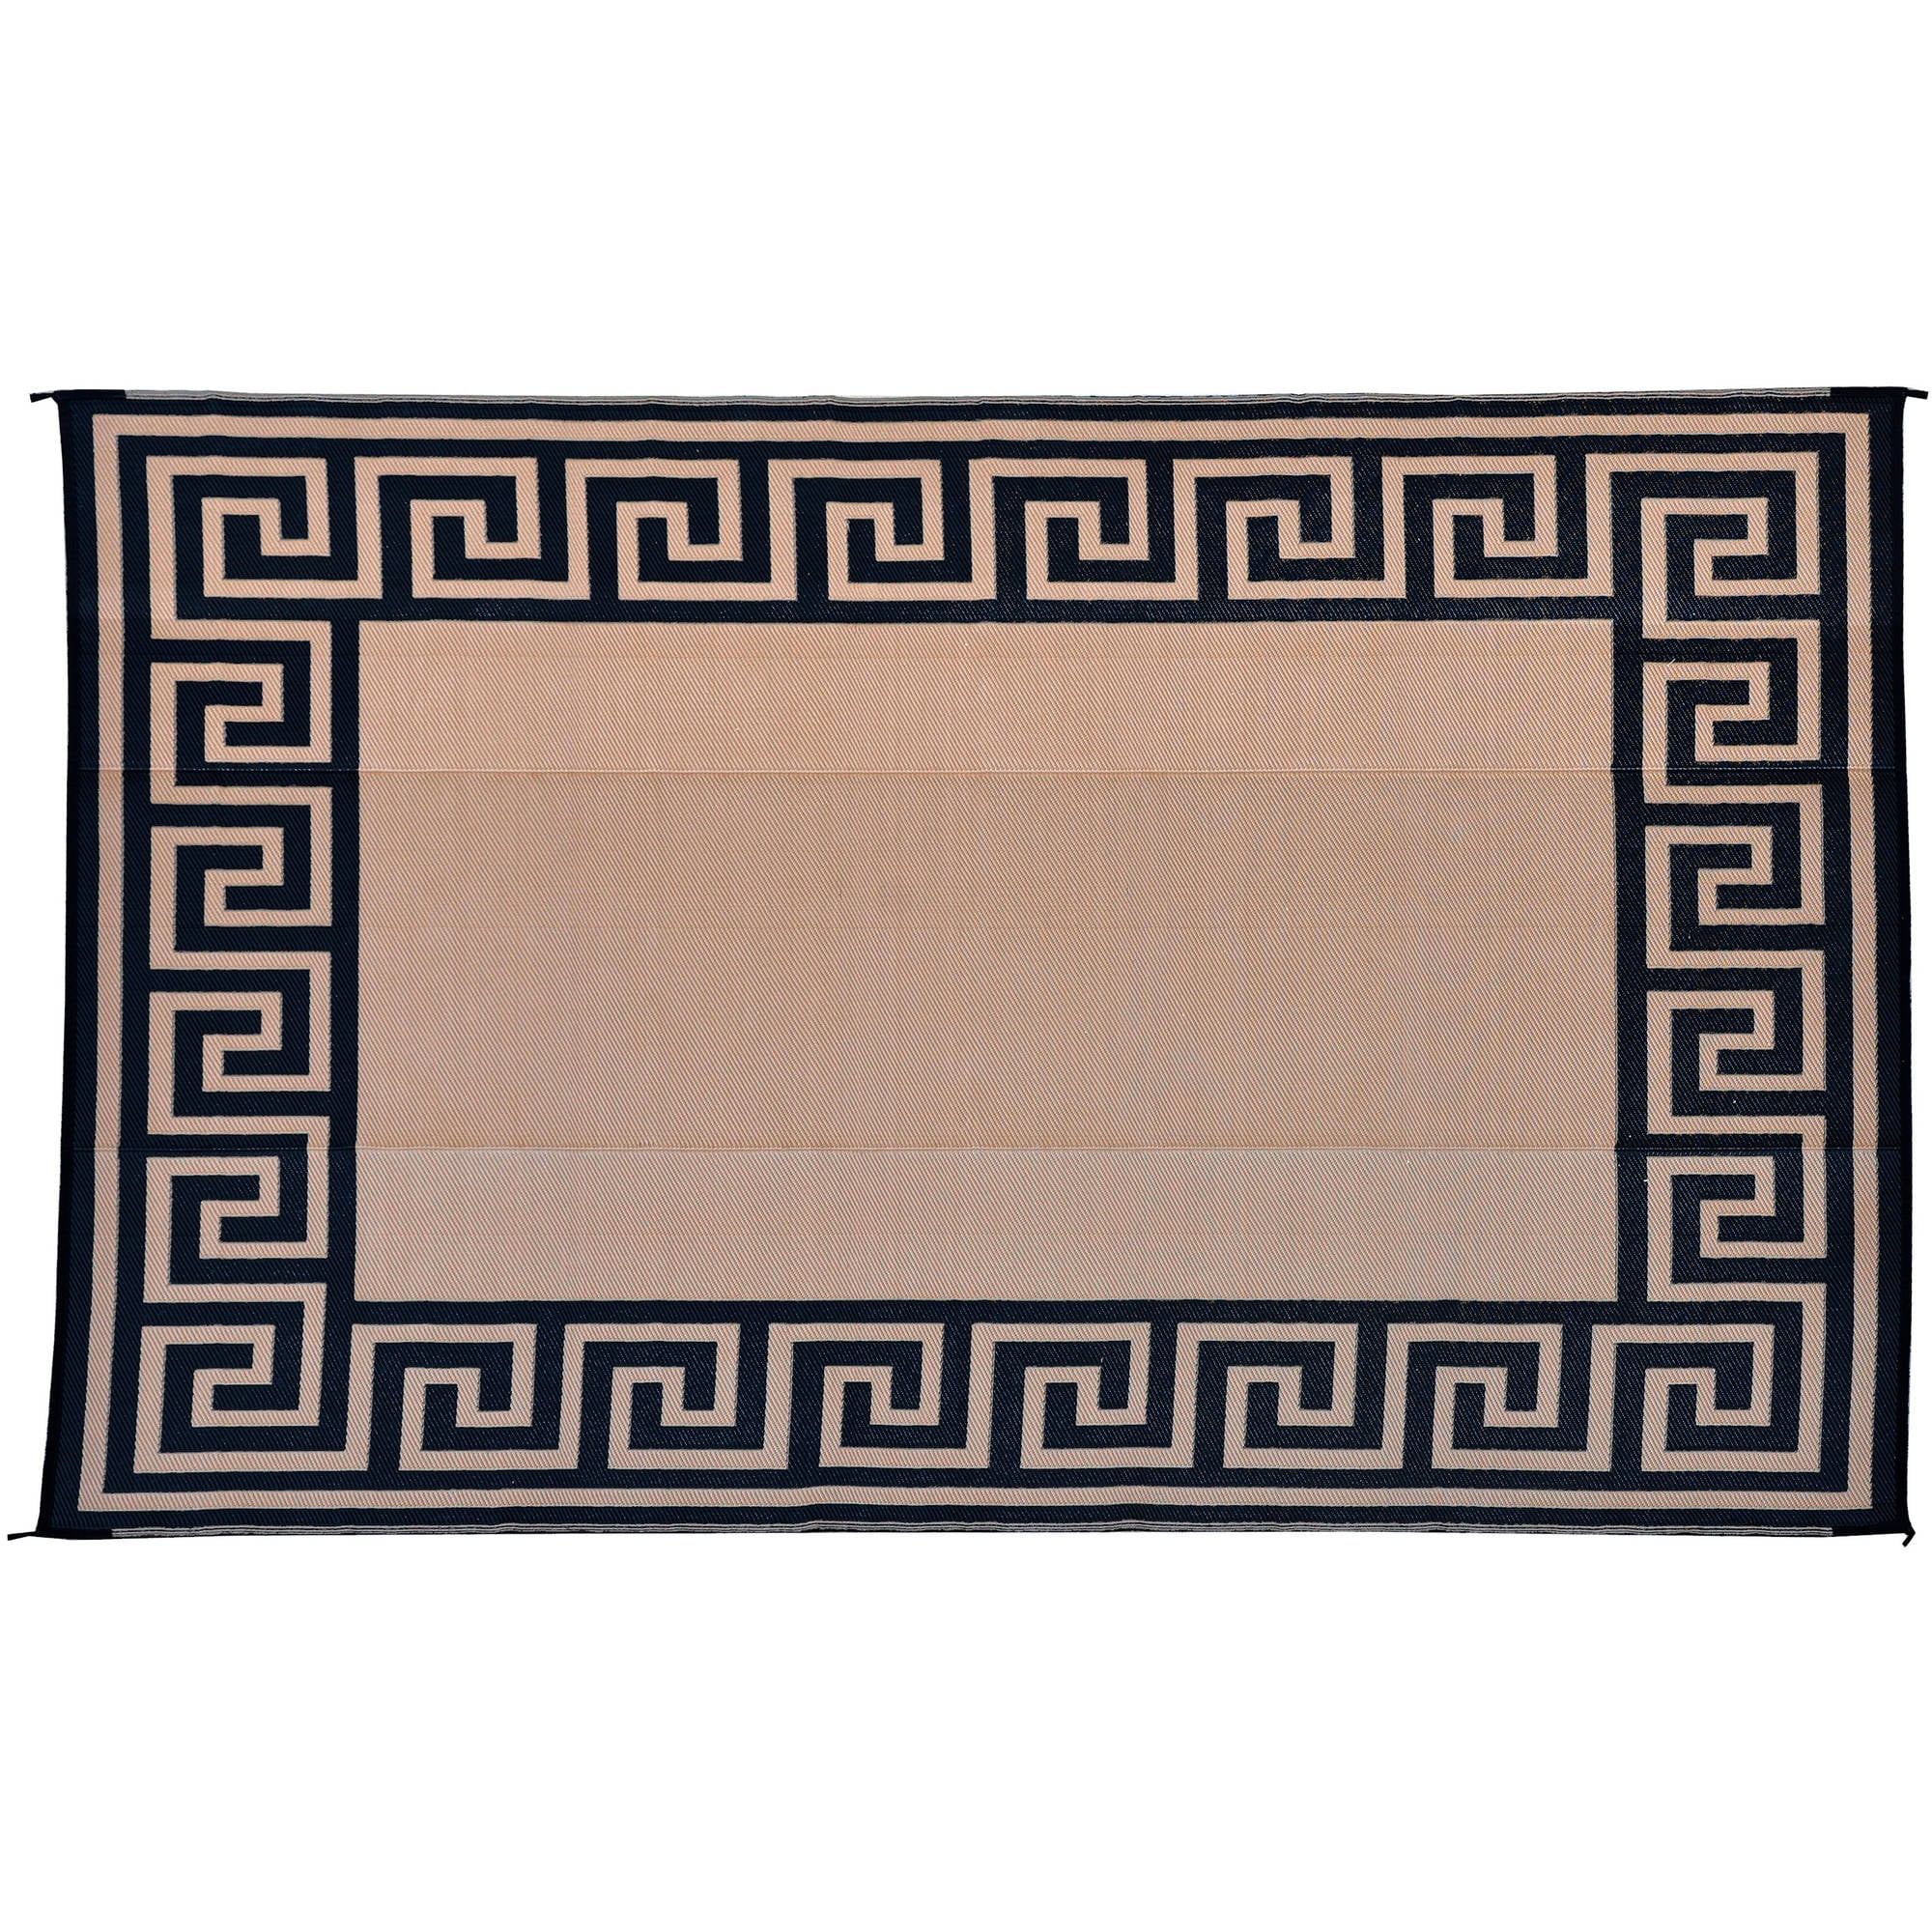 stunning outdoor mats carpet rv patio mat suggestion reversible furniture decor camping rug